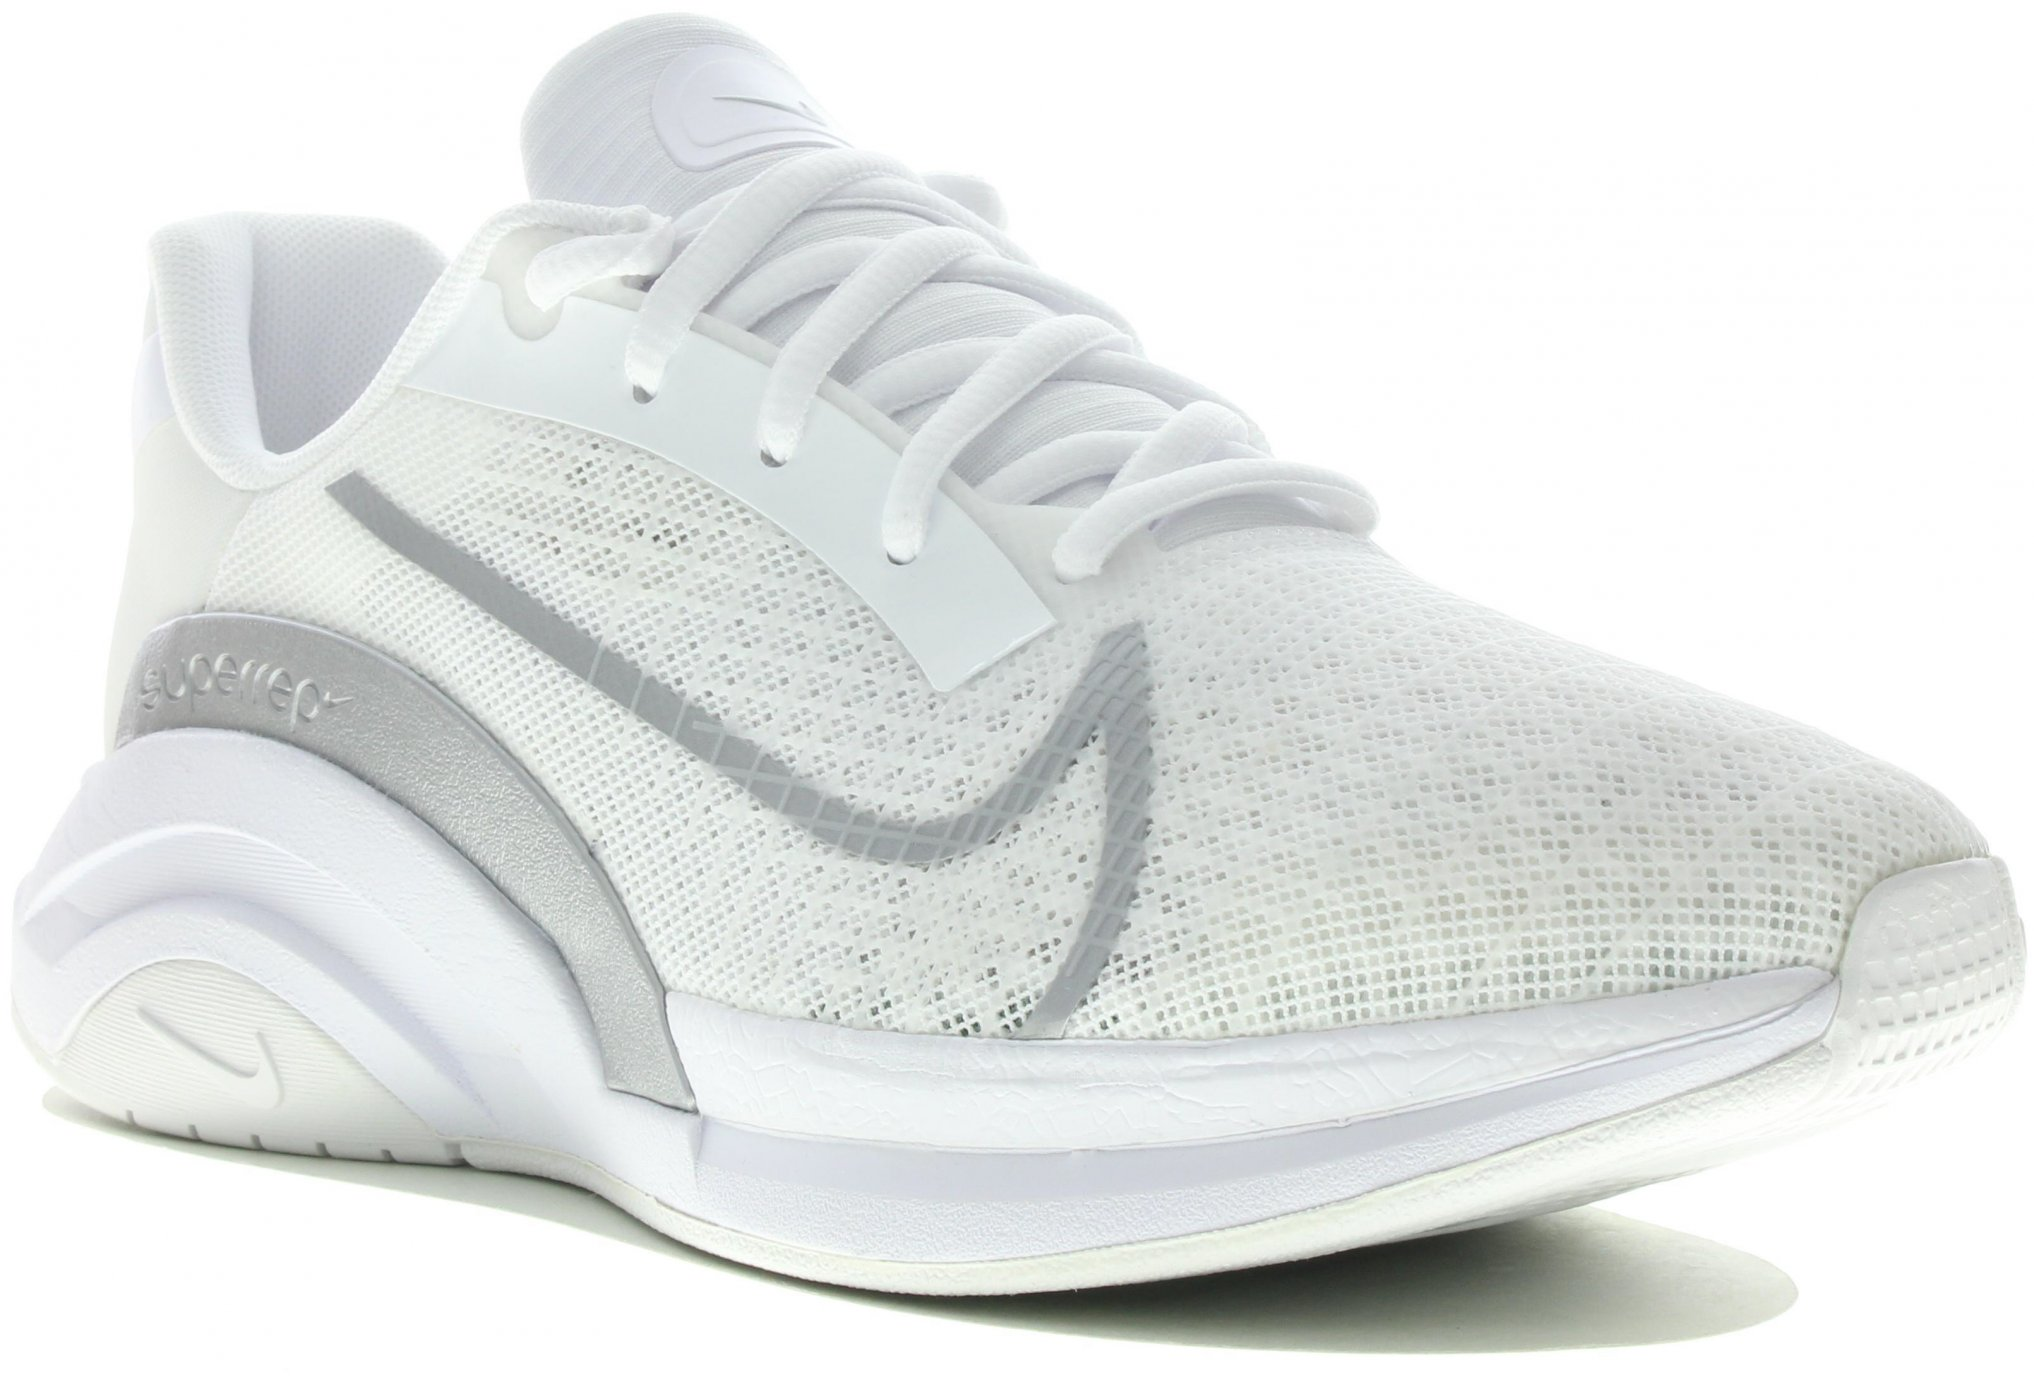 Nike ZoomX SuperRep Surge W Chaussures running femme